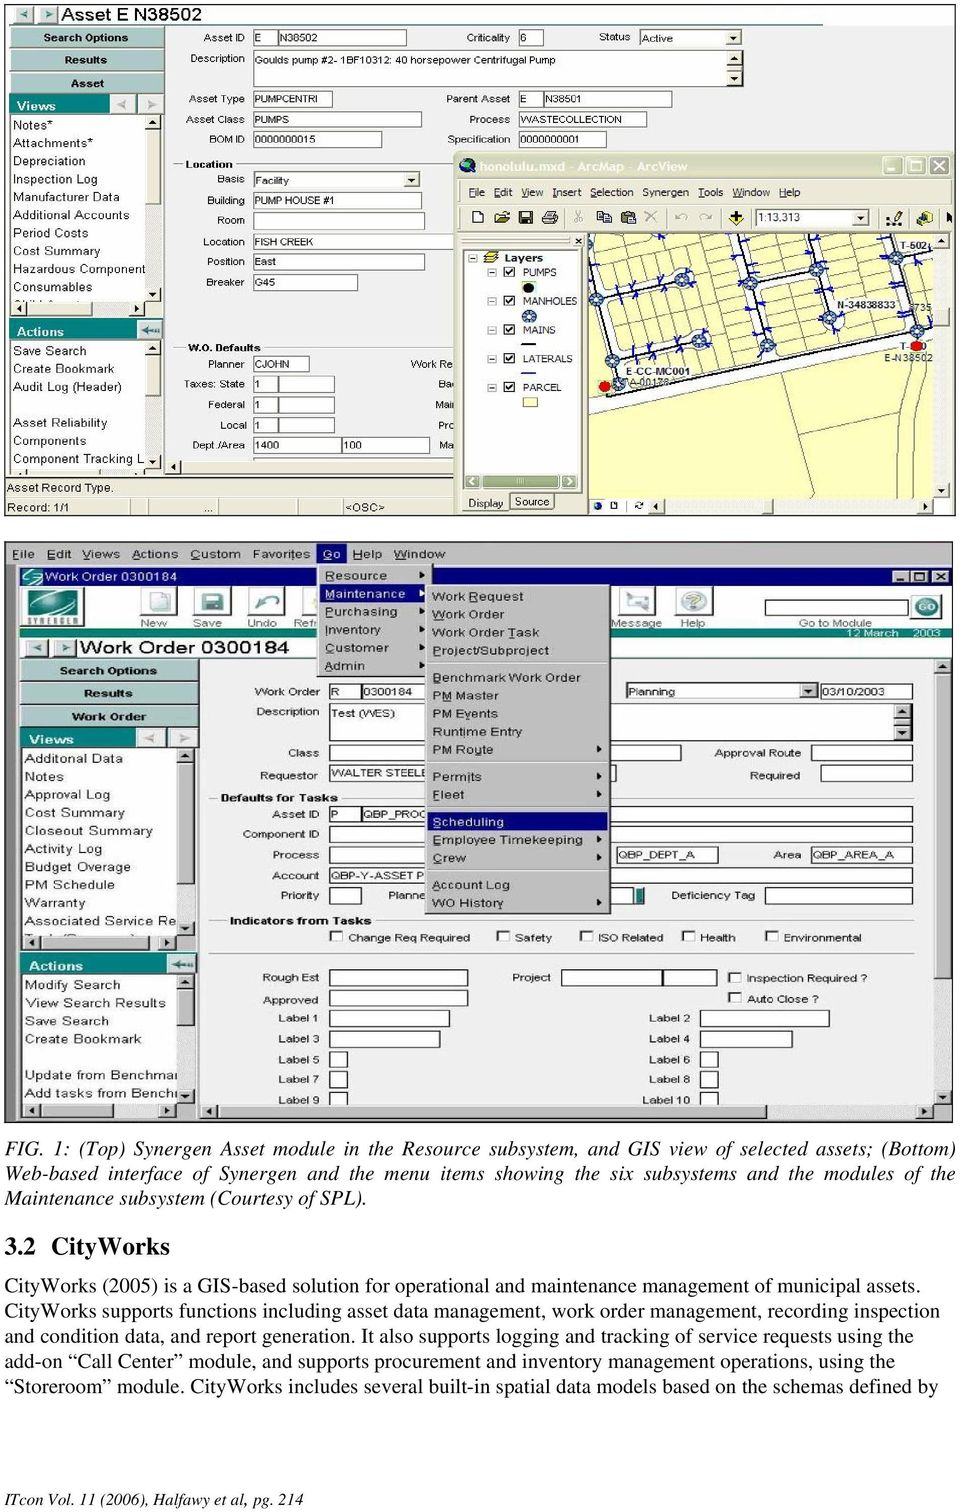 CityWorks supports functions including asset data management, work order management, recording inspection and condition data, and report generation.